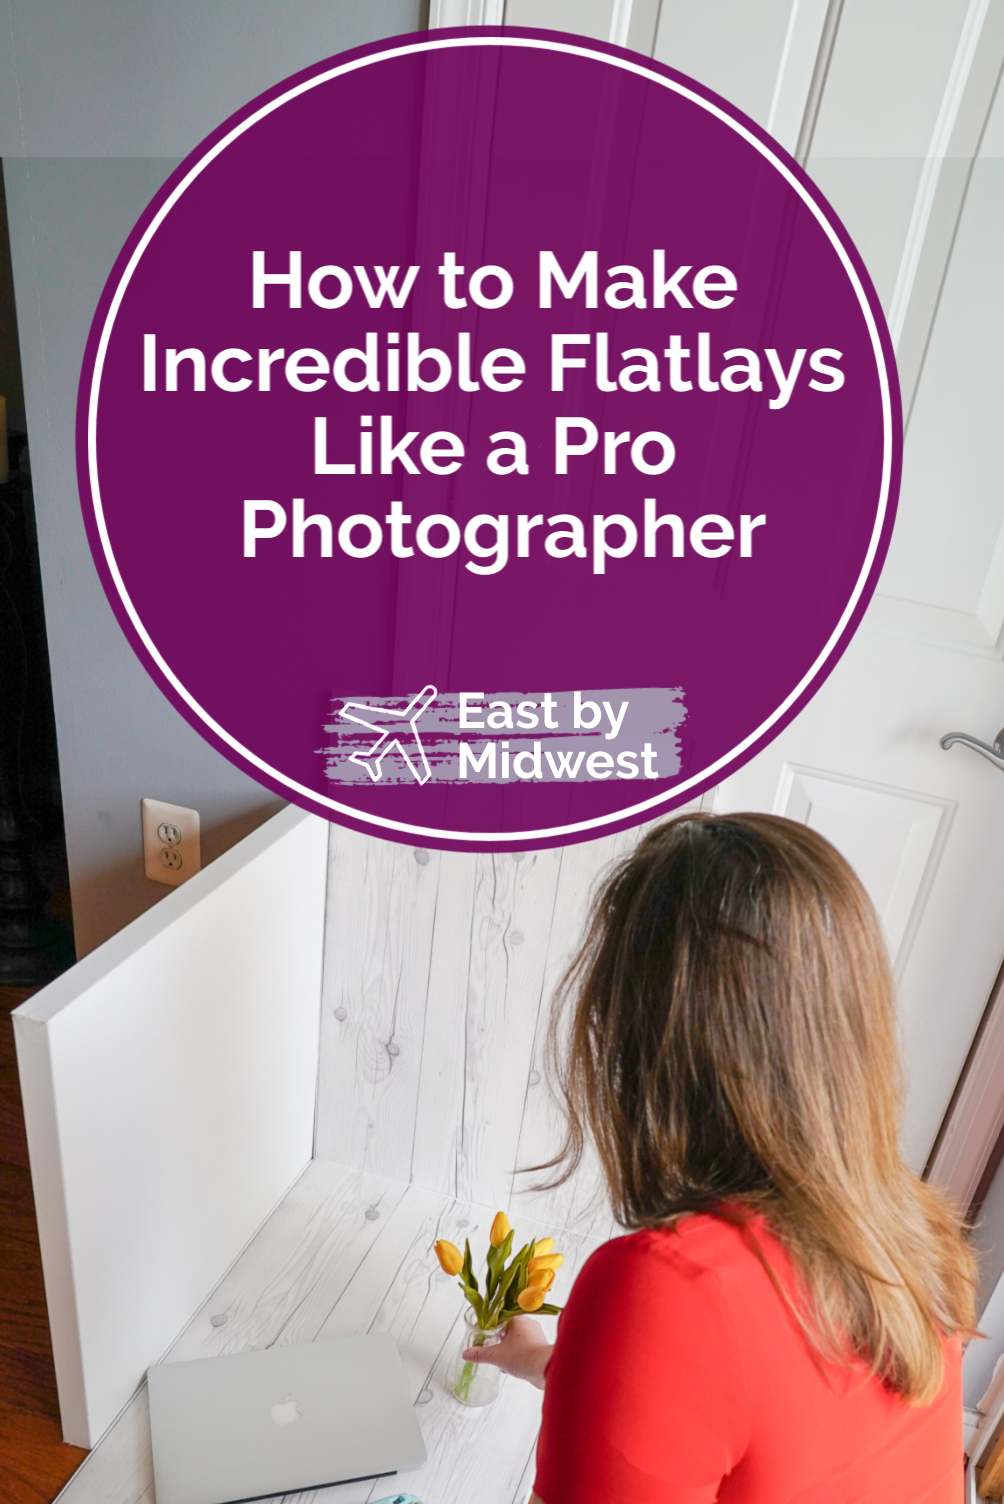 How to Make Incredible Flatlays Like a Pro Photographer